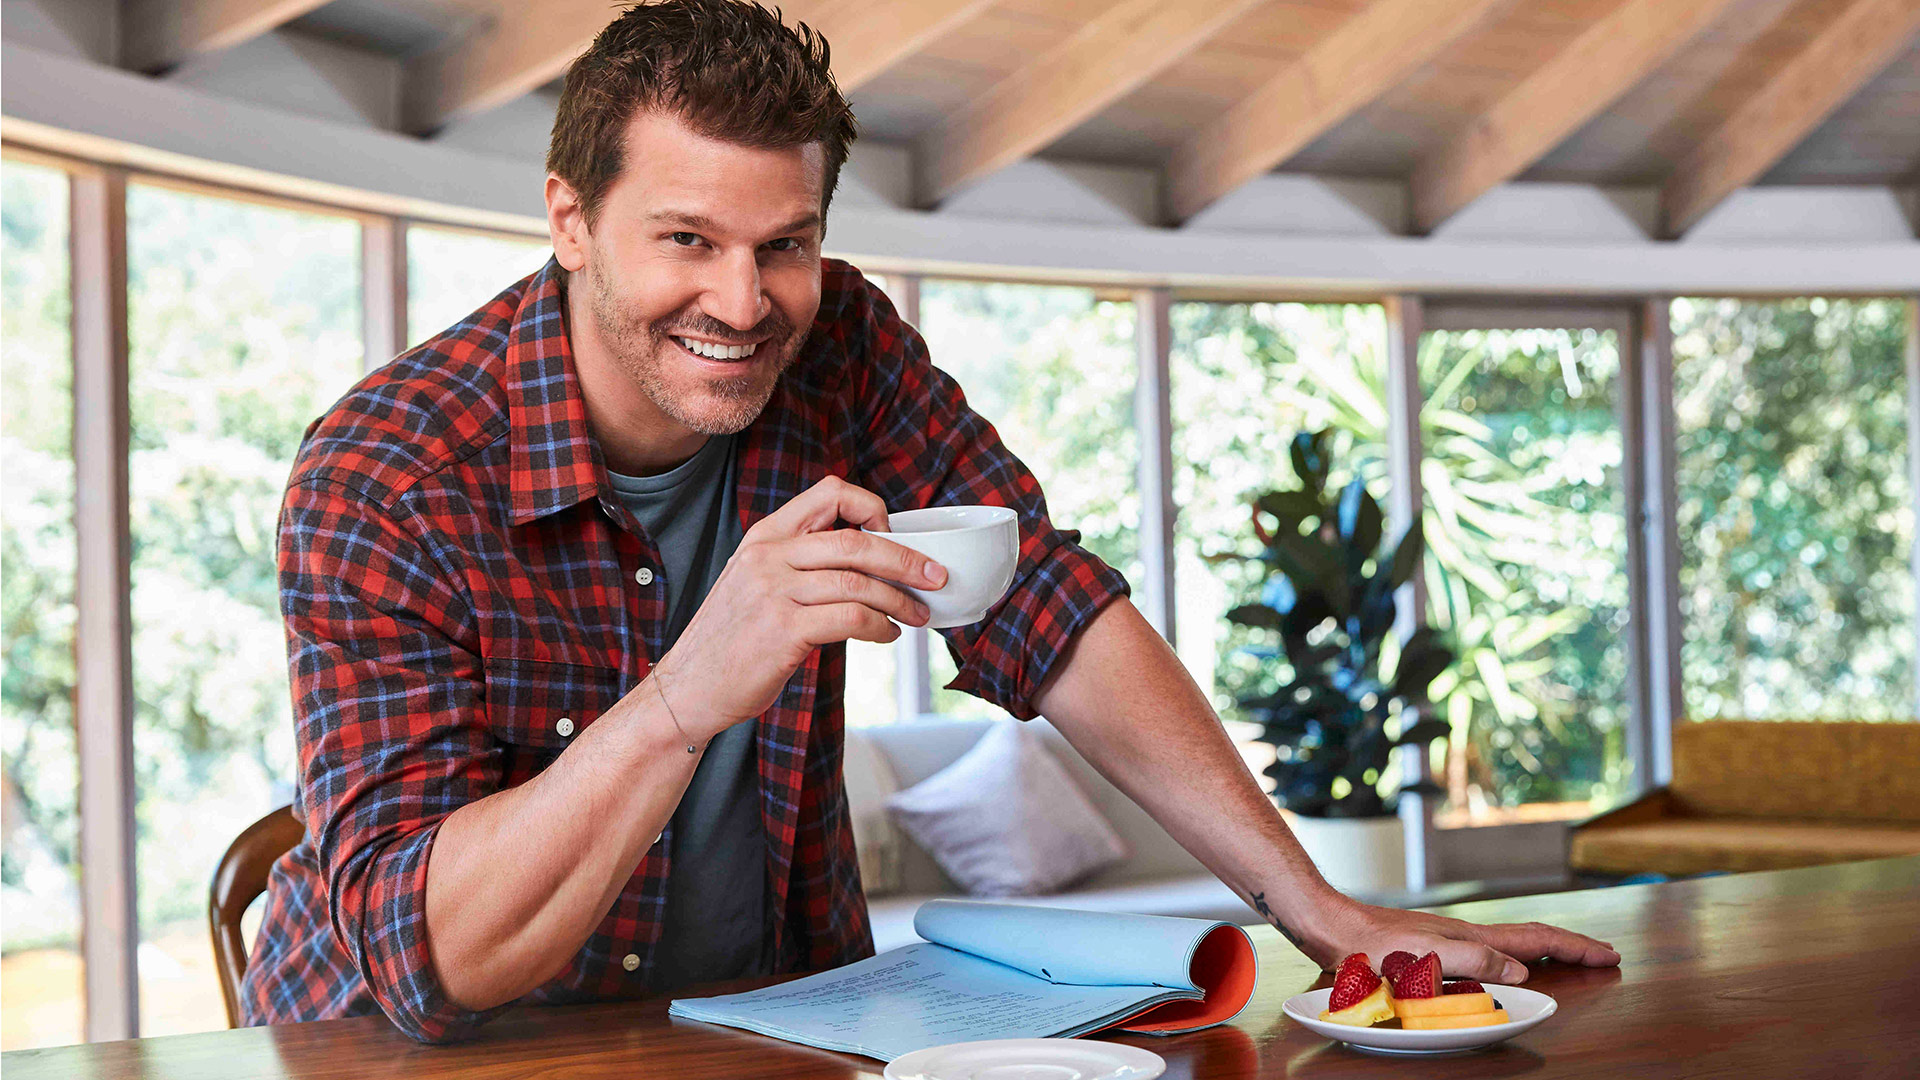 David Boreanaz, especially looking perfect in plaid